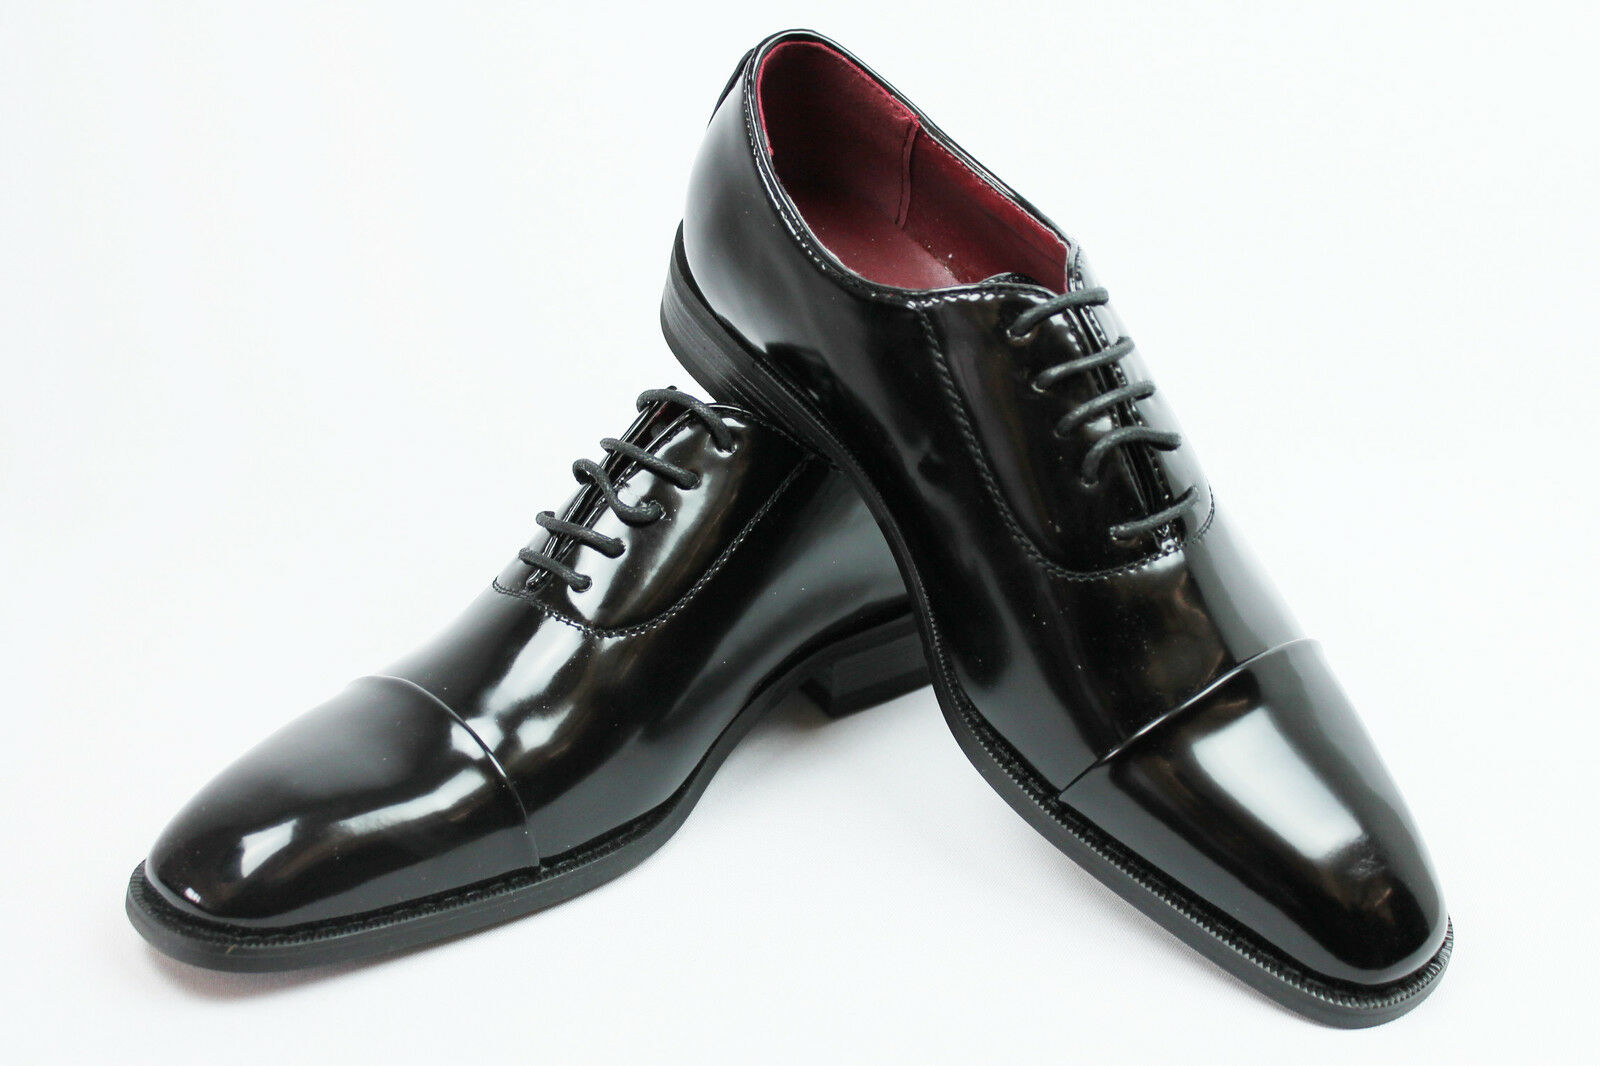 patent leather dress shoes for ebay